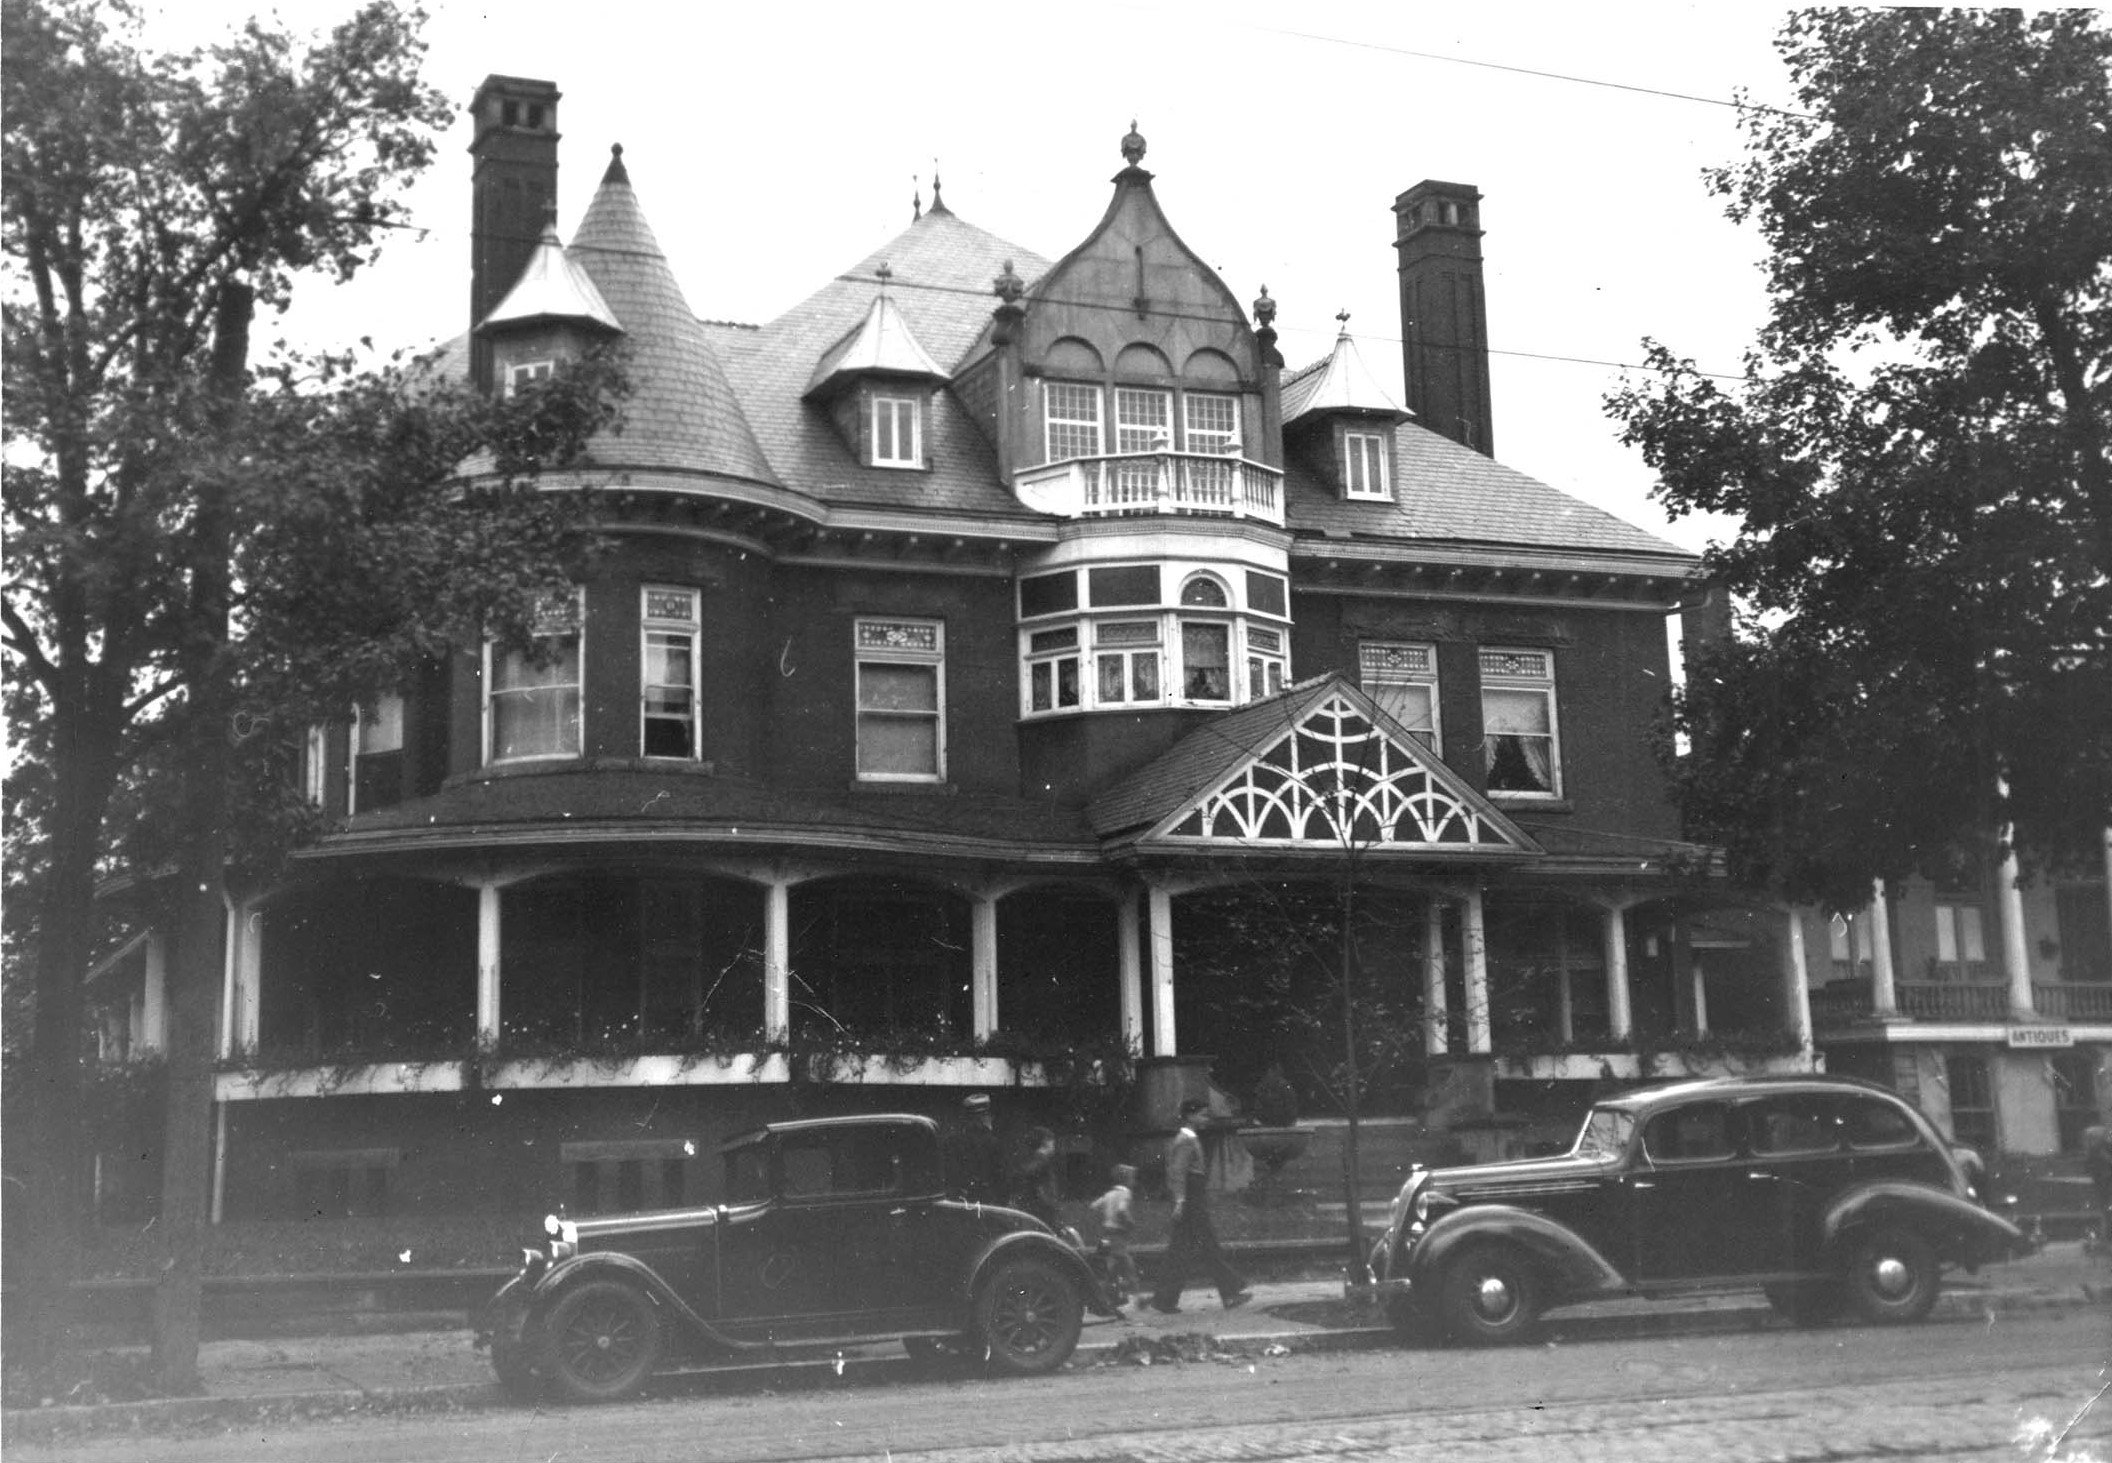 The Enslow Mansion in 1936, around the time of the murder of Juliette Buffington Enslow. Image courtesy of Marshall University Special Collections.